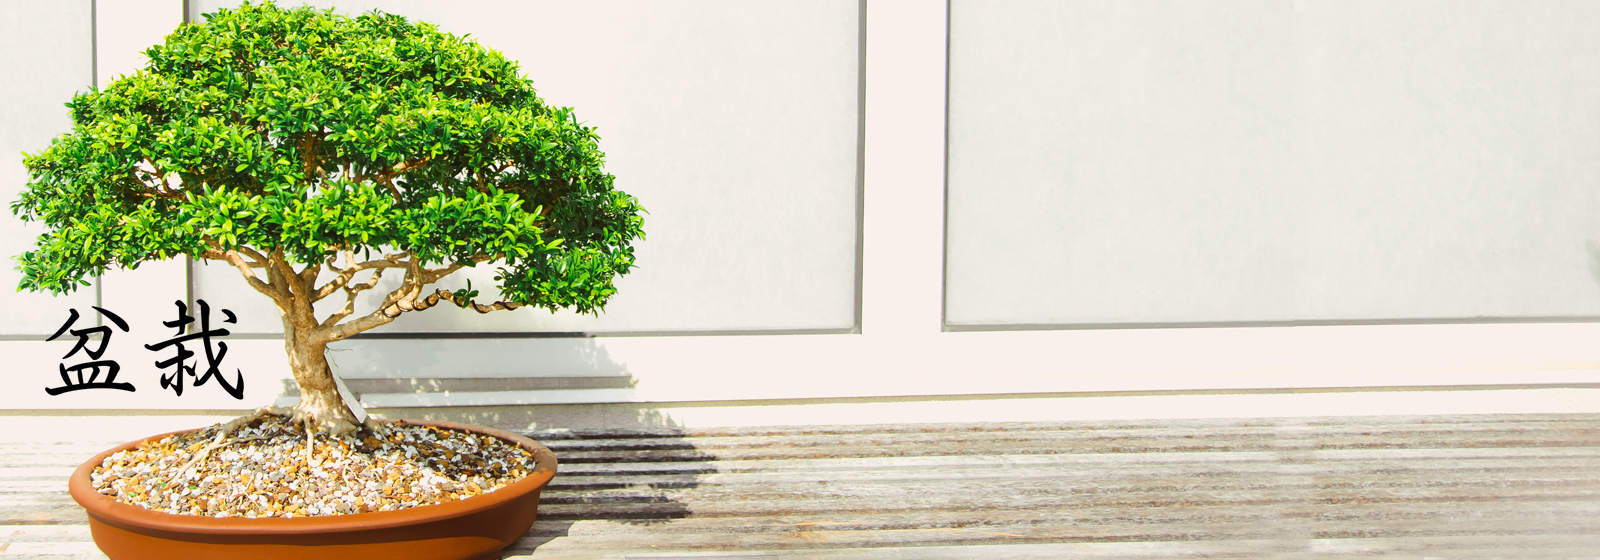 bonsai header